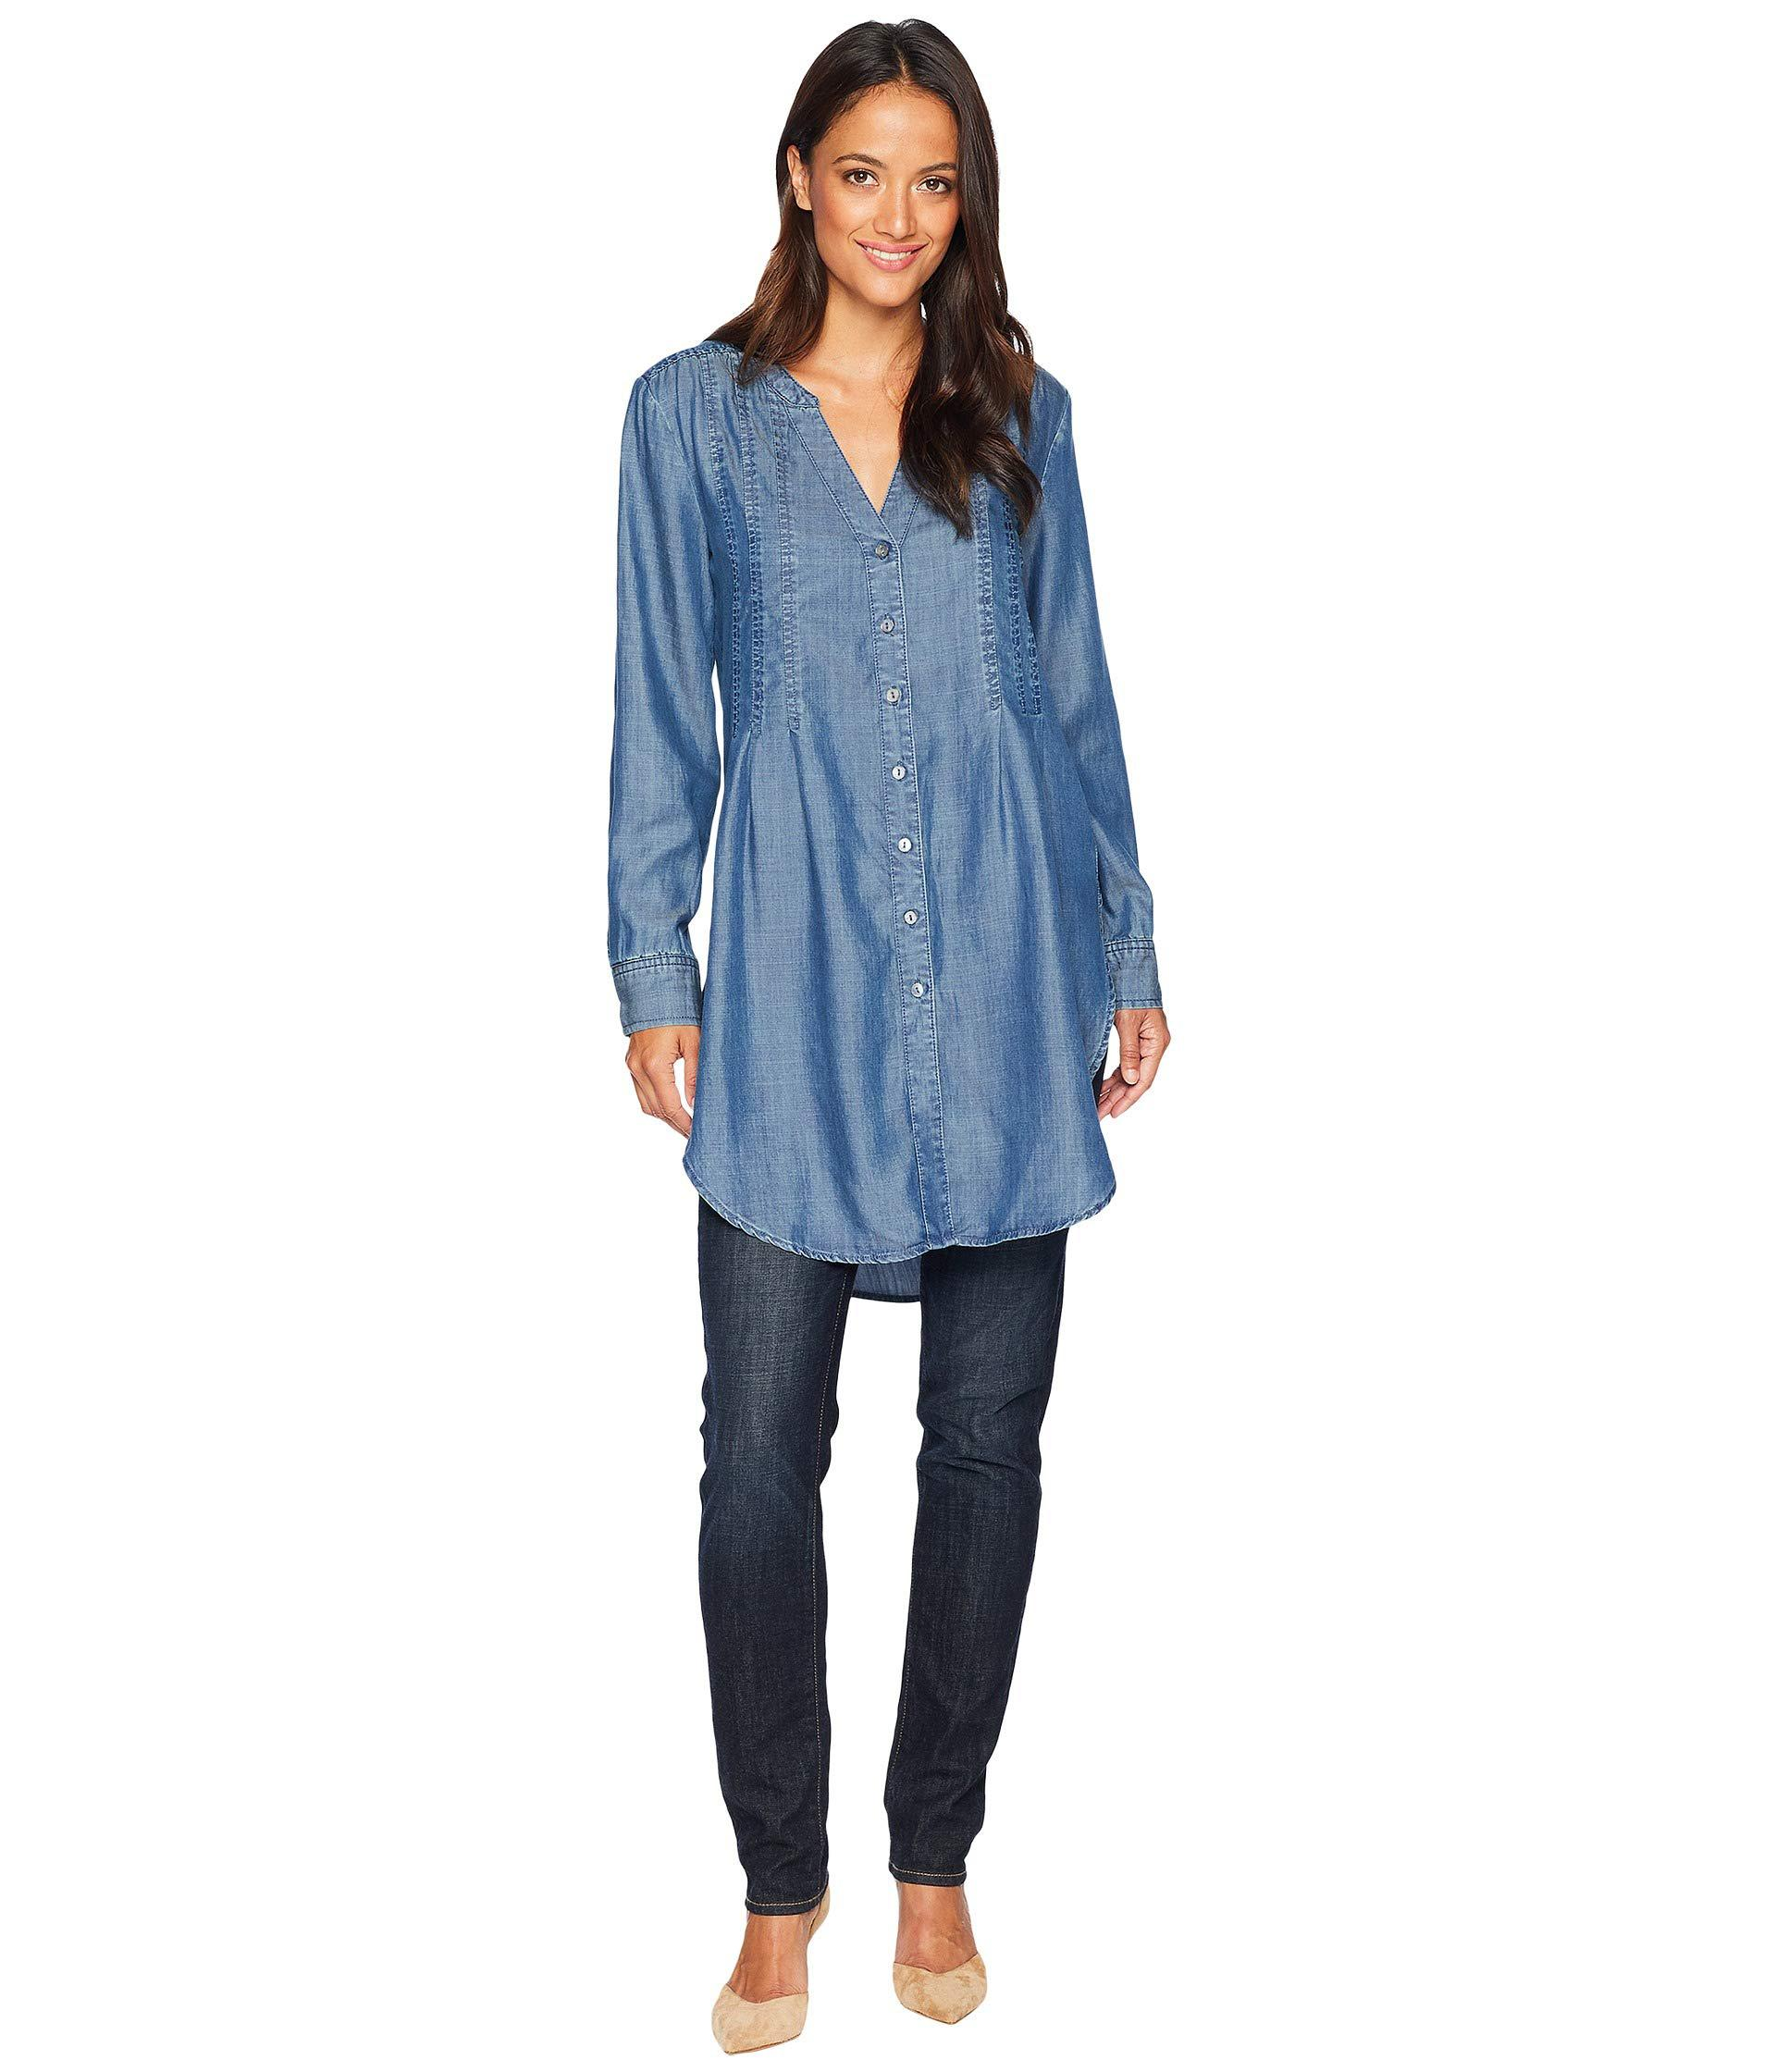 c8cb5f7ebbf Lyst - Liverpool Jeans Company Tunic With Release Pleat (sierra Dark ...